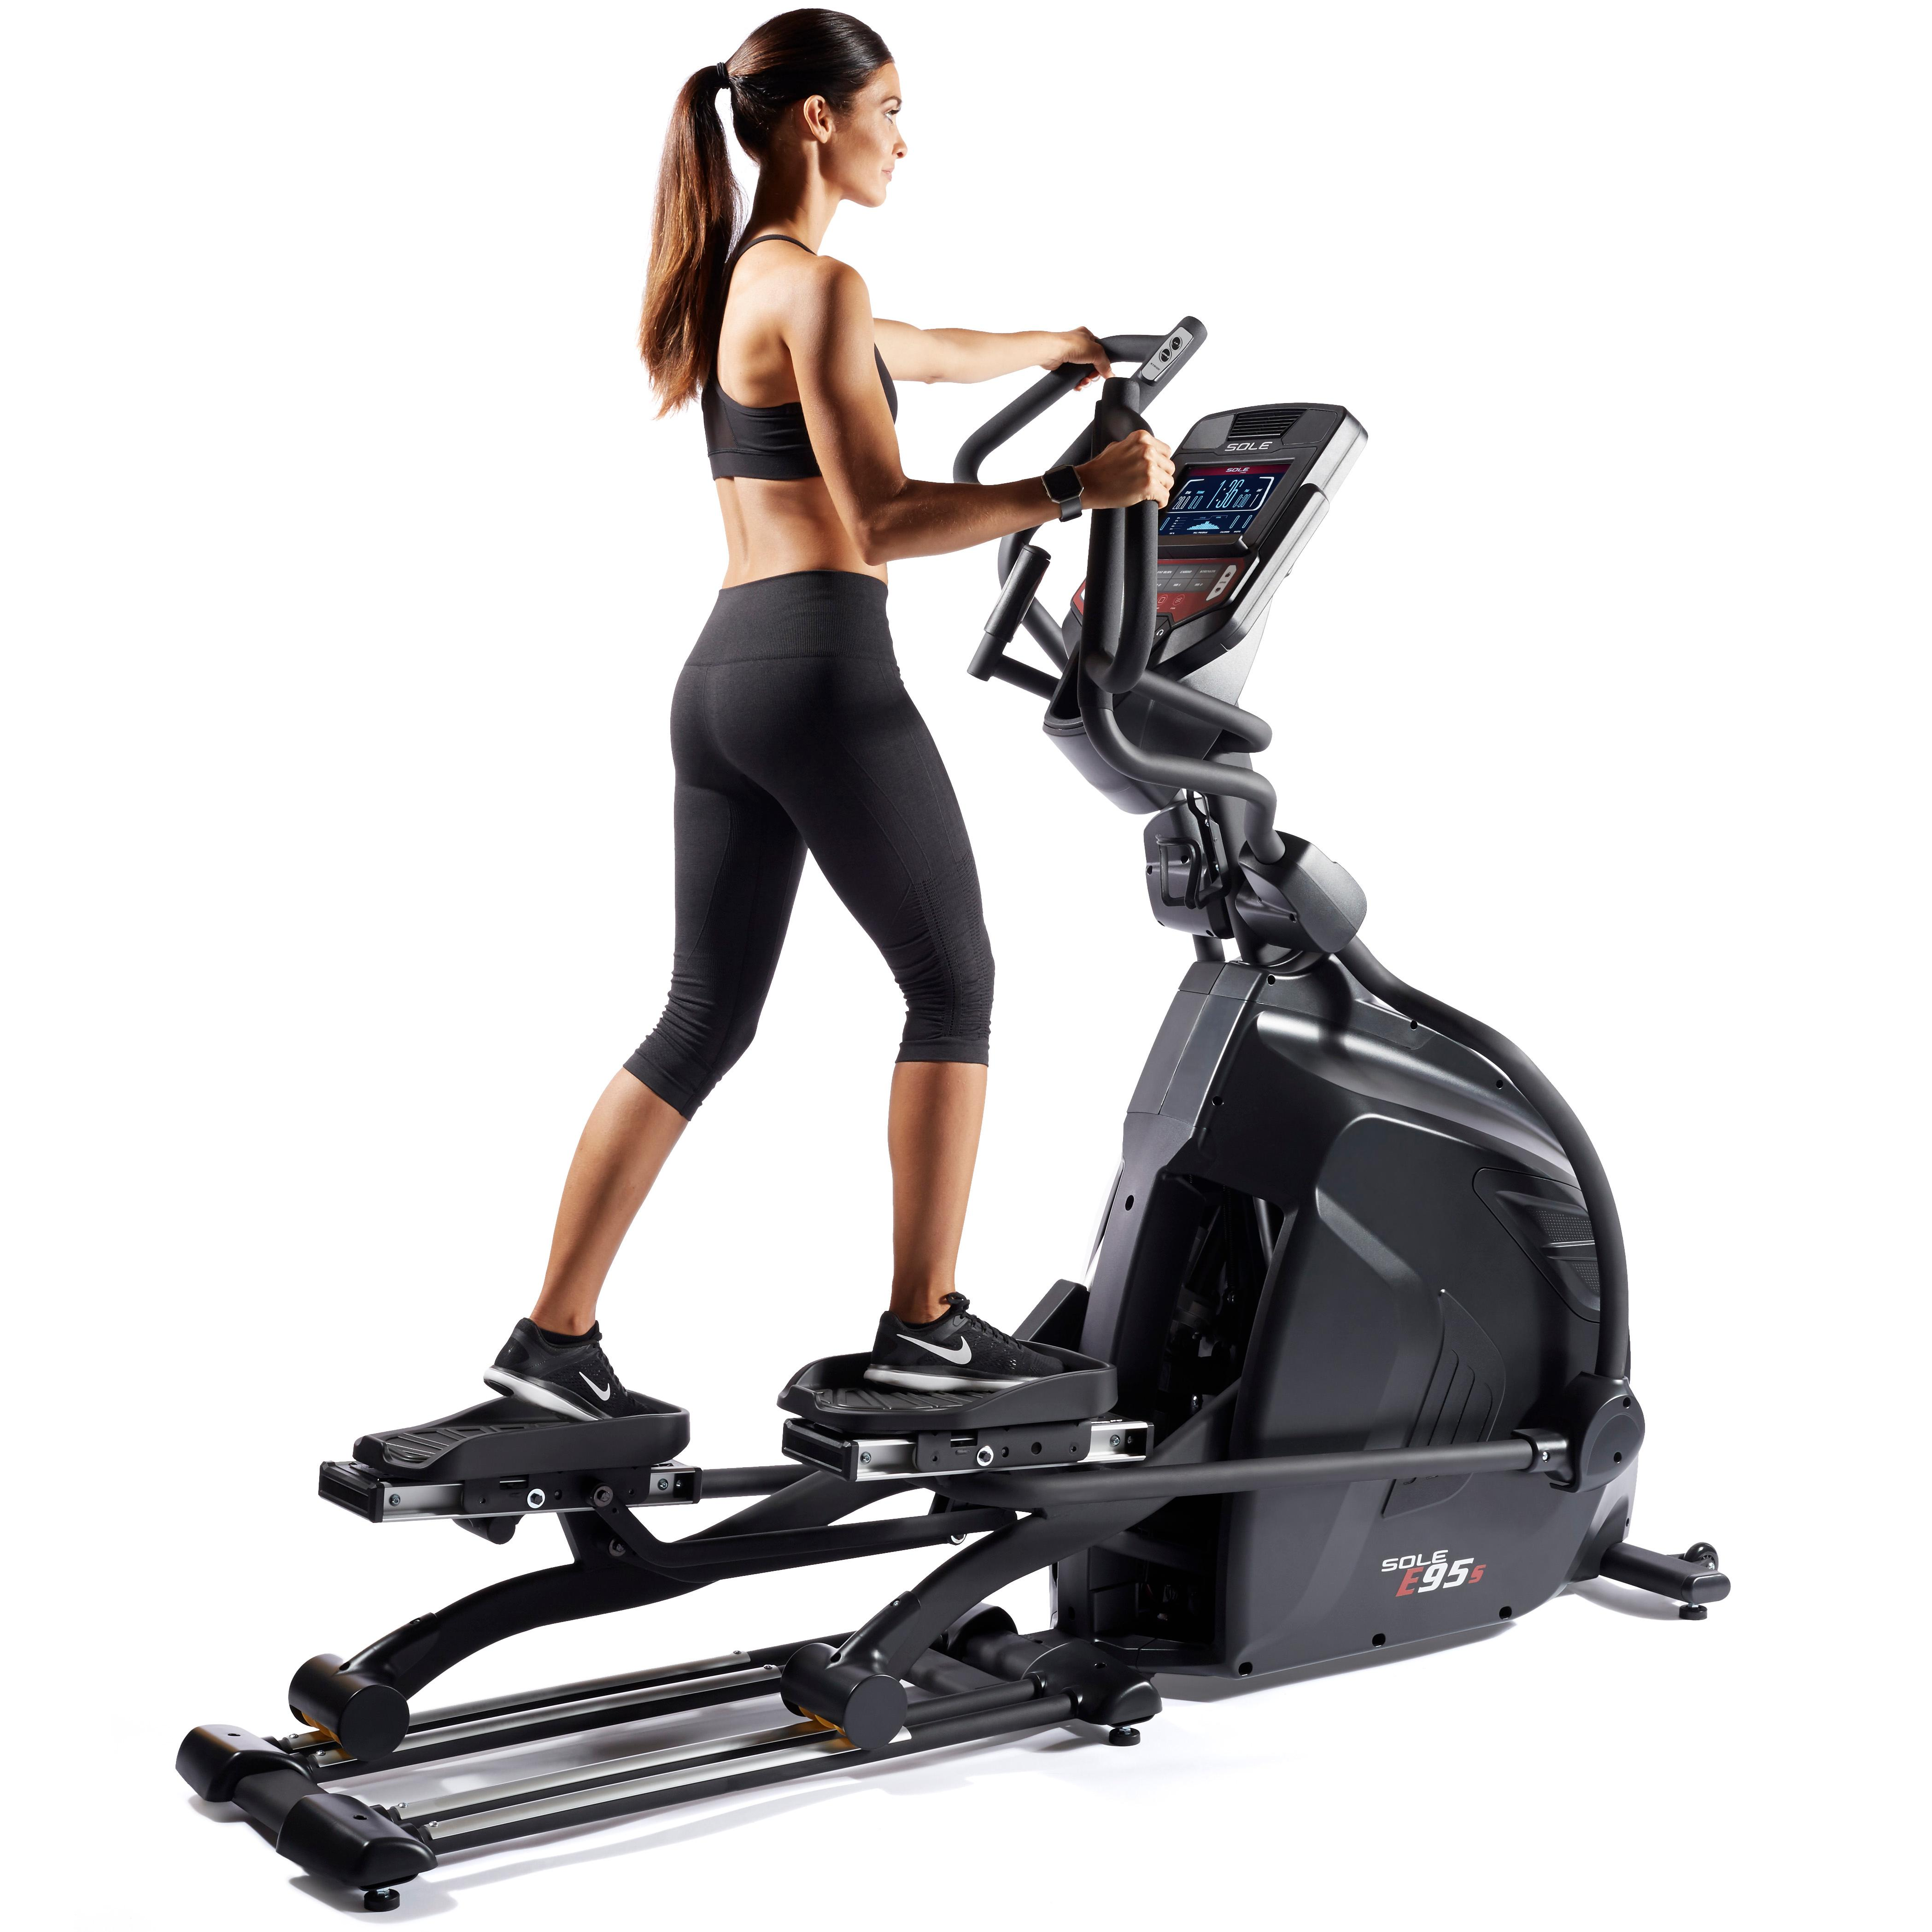 smooth fitness ce 7.4 elliptical review